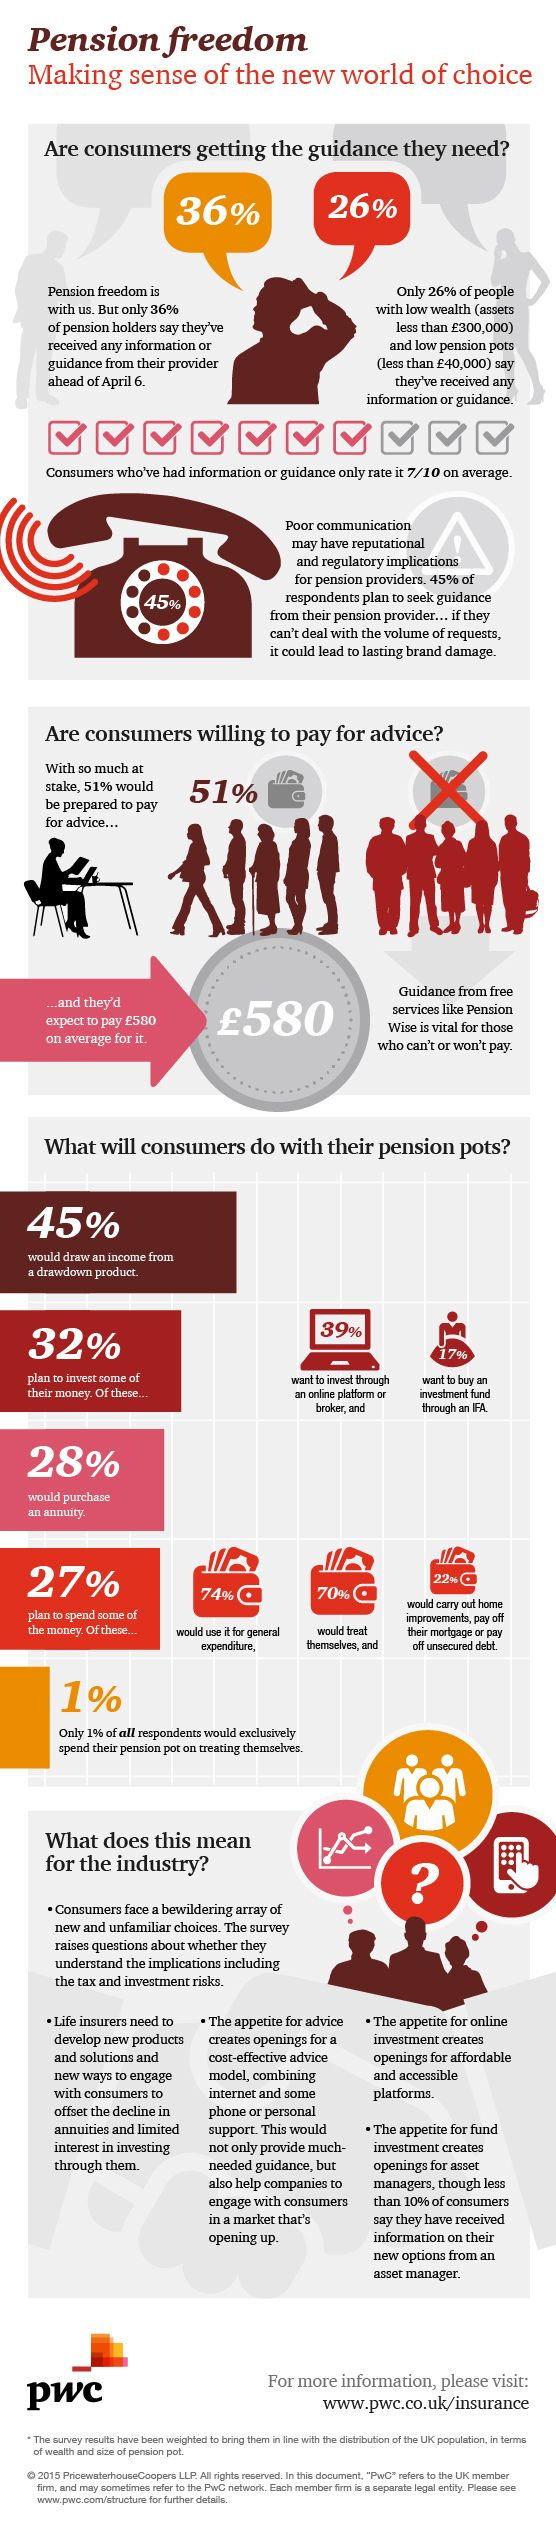 PwC pensions survey infographic. What will consumers do with their new freedoms and what does this mean for insurers and asset managers.